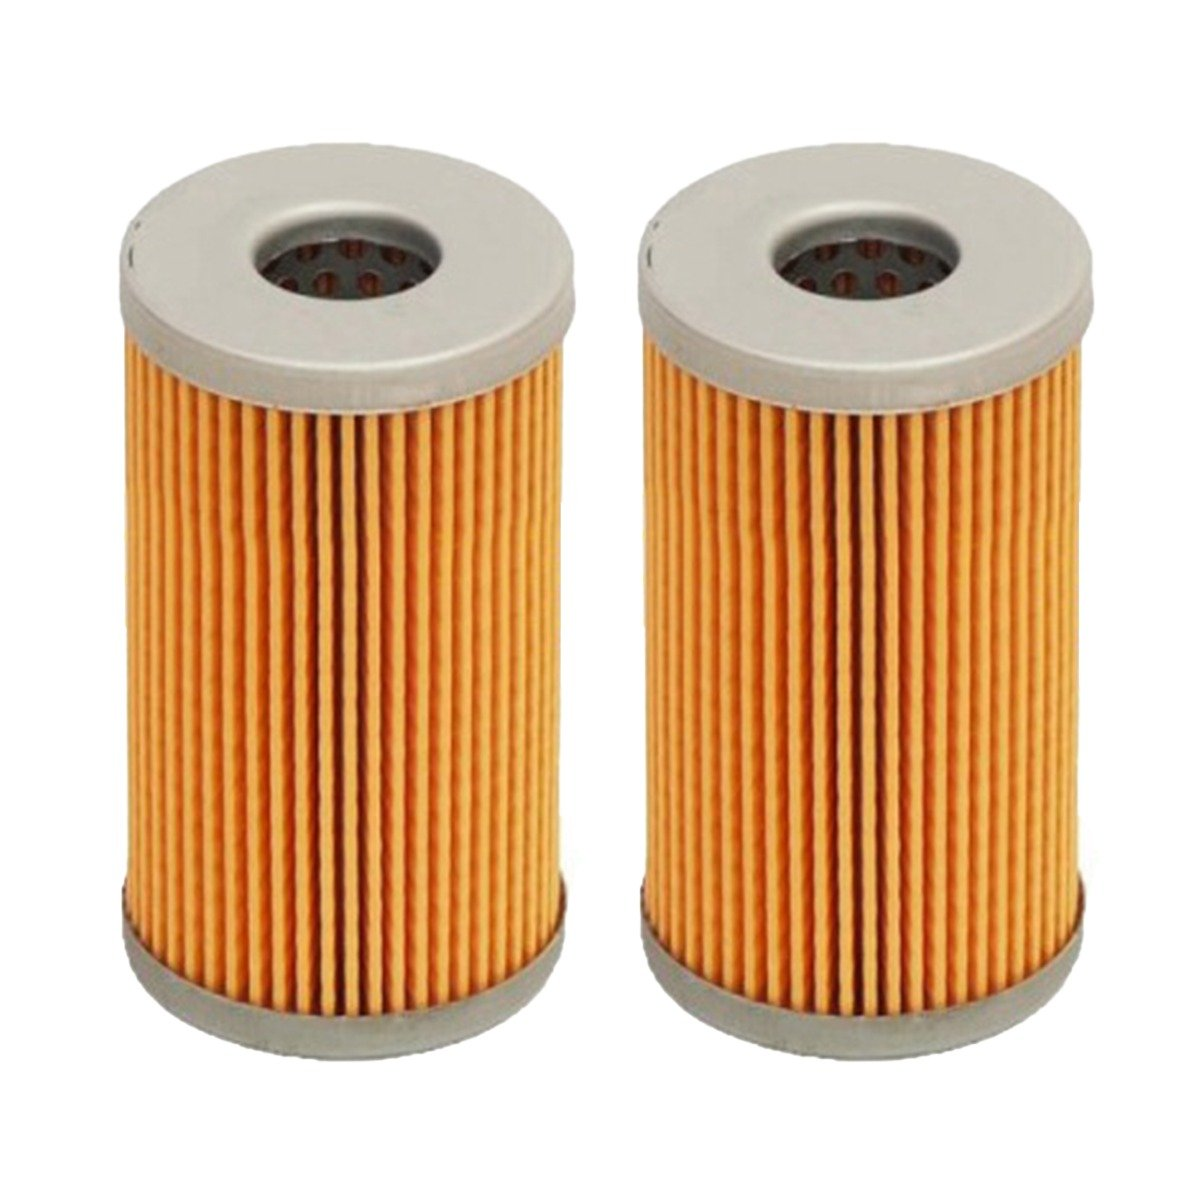 Fuel Filter 129100-55650 2PCS Compatiblewith New Holland Boomer 3040 3045 3050 4055